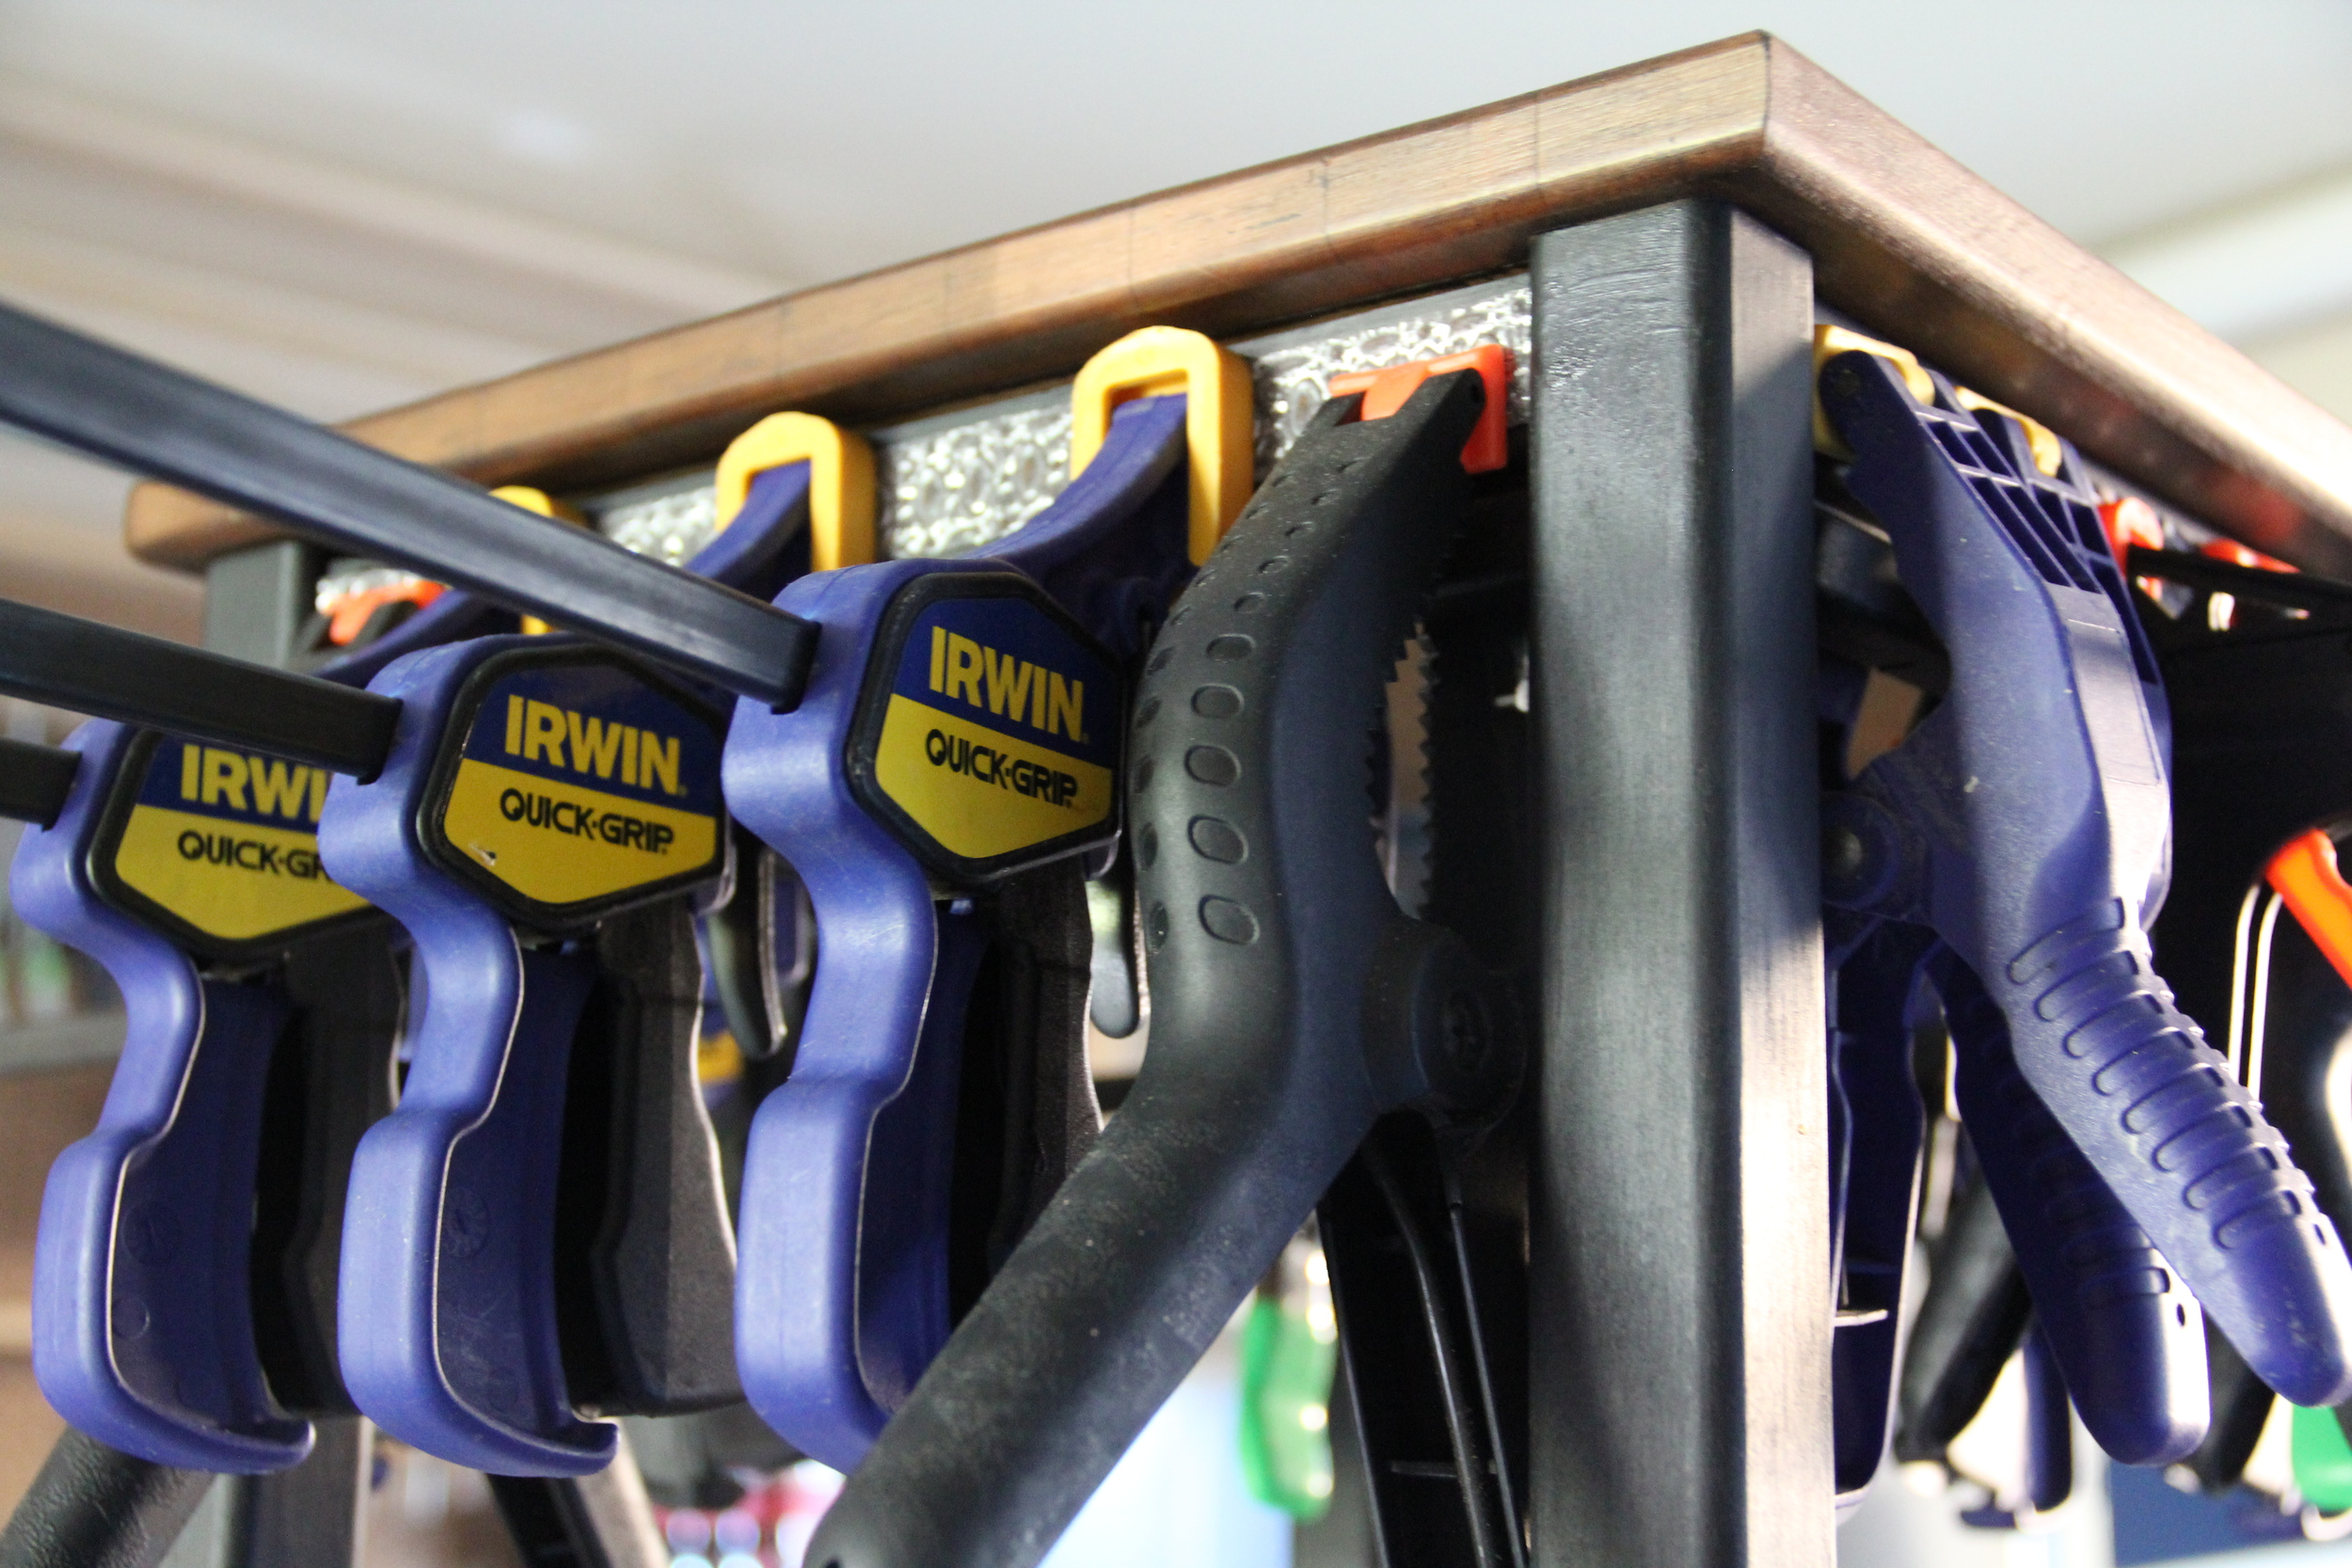 NOW, THAT'S A COLLECTION OF CLAMPS!